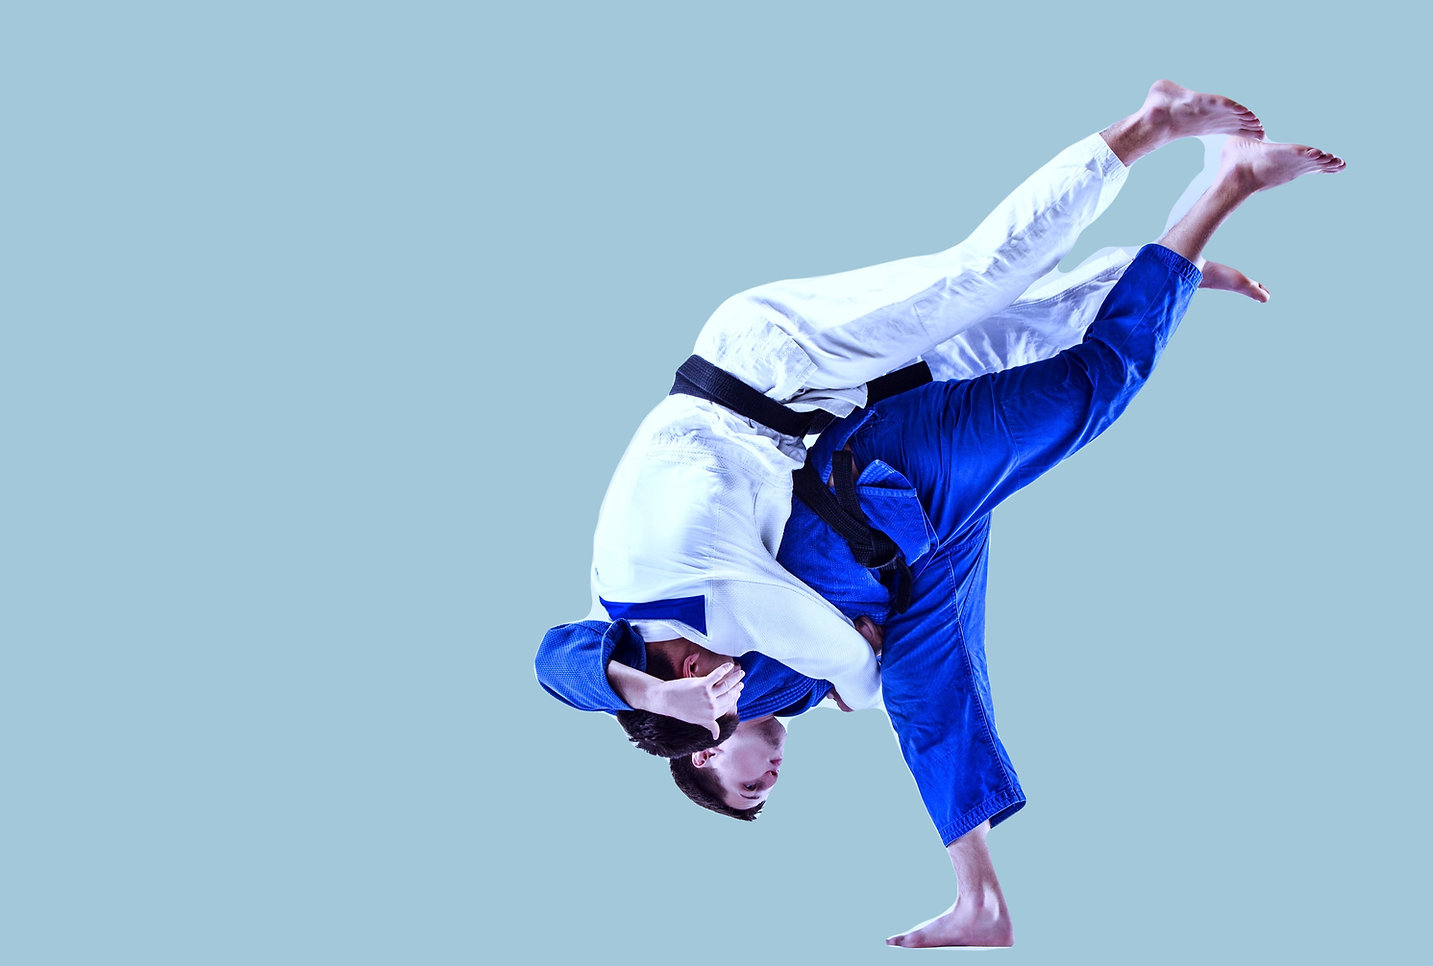 The%2520two%2520judokas%2520fighters%252